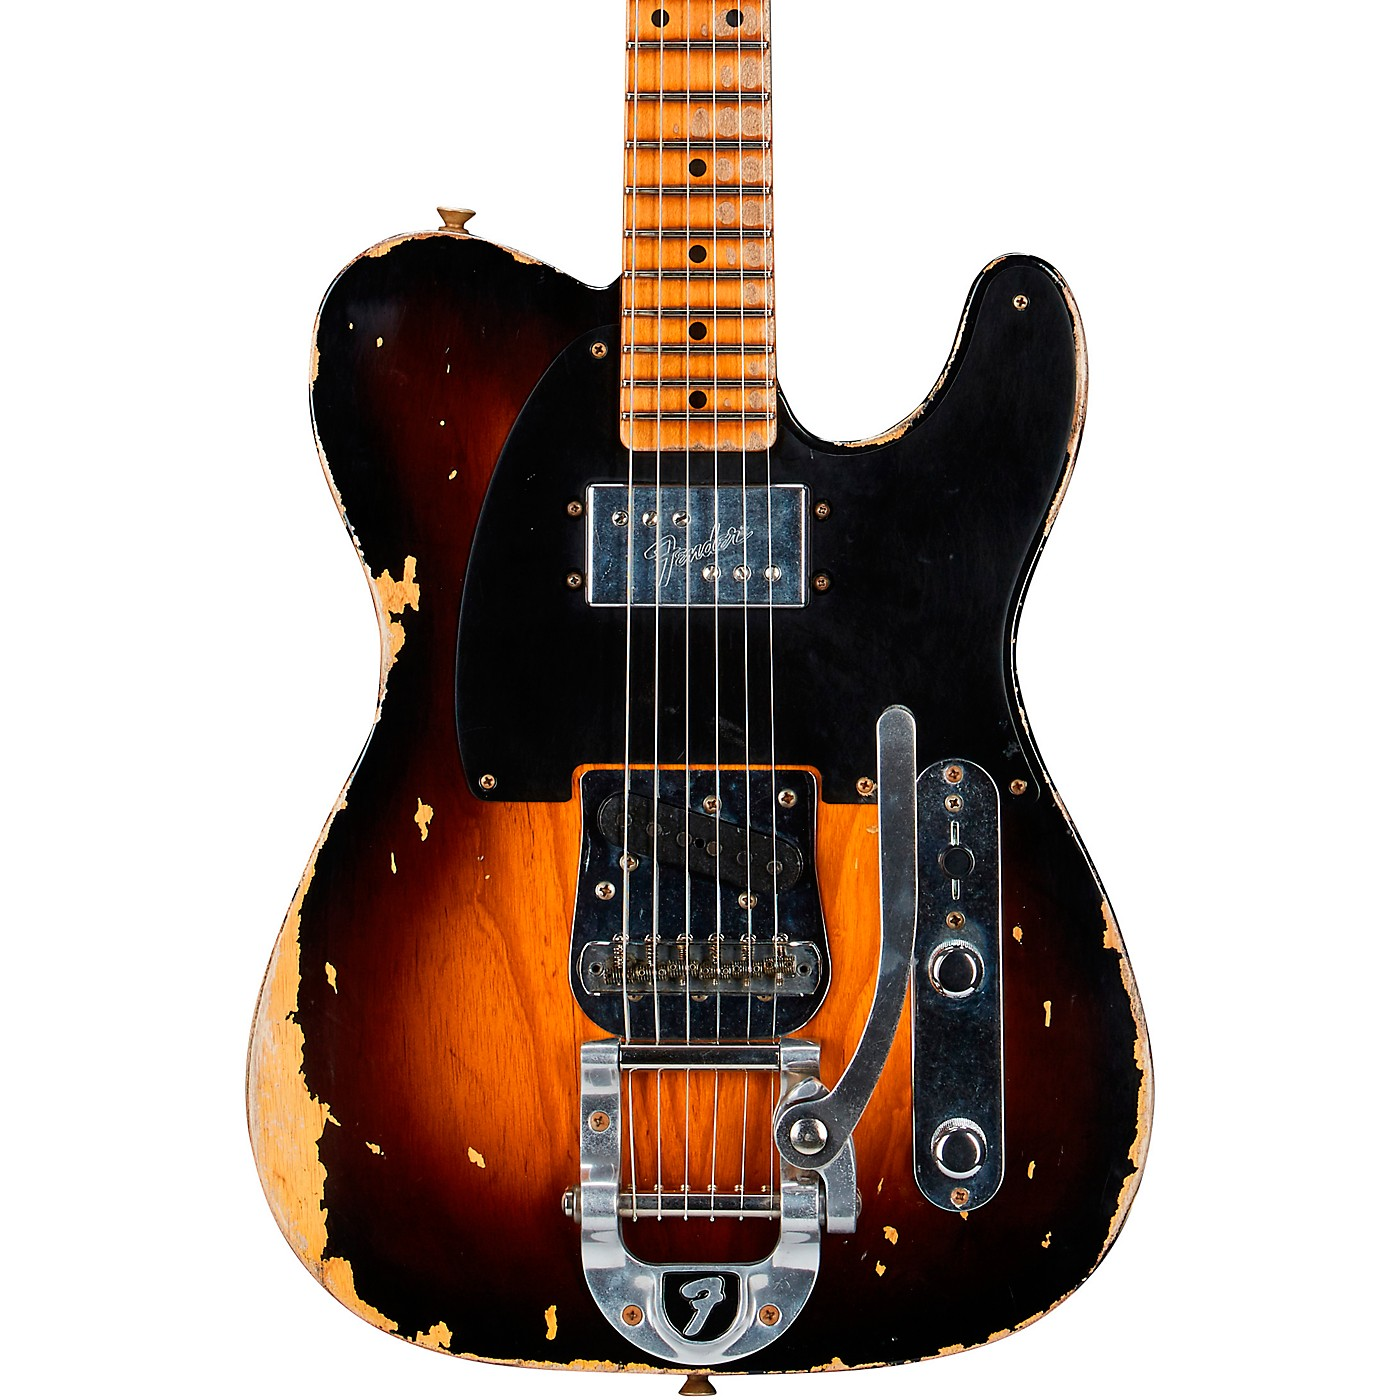 Fender Custom Shop Limited Edition Cunife Blackguard Telecaster Heavy Relic Electric Guitar thumbnail